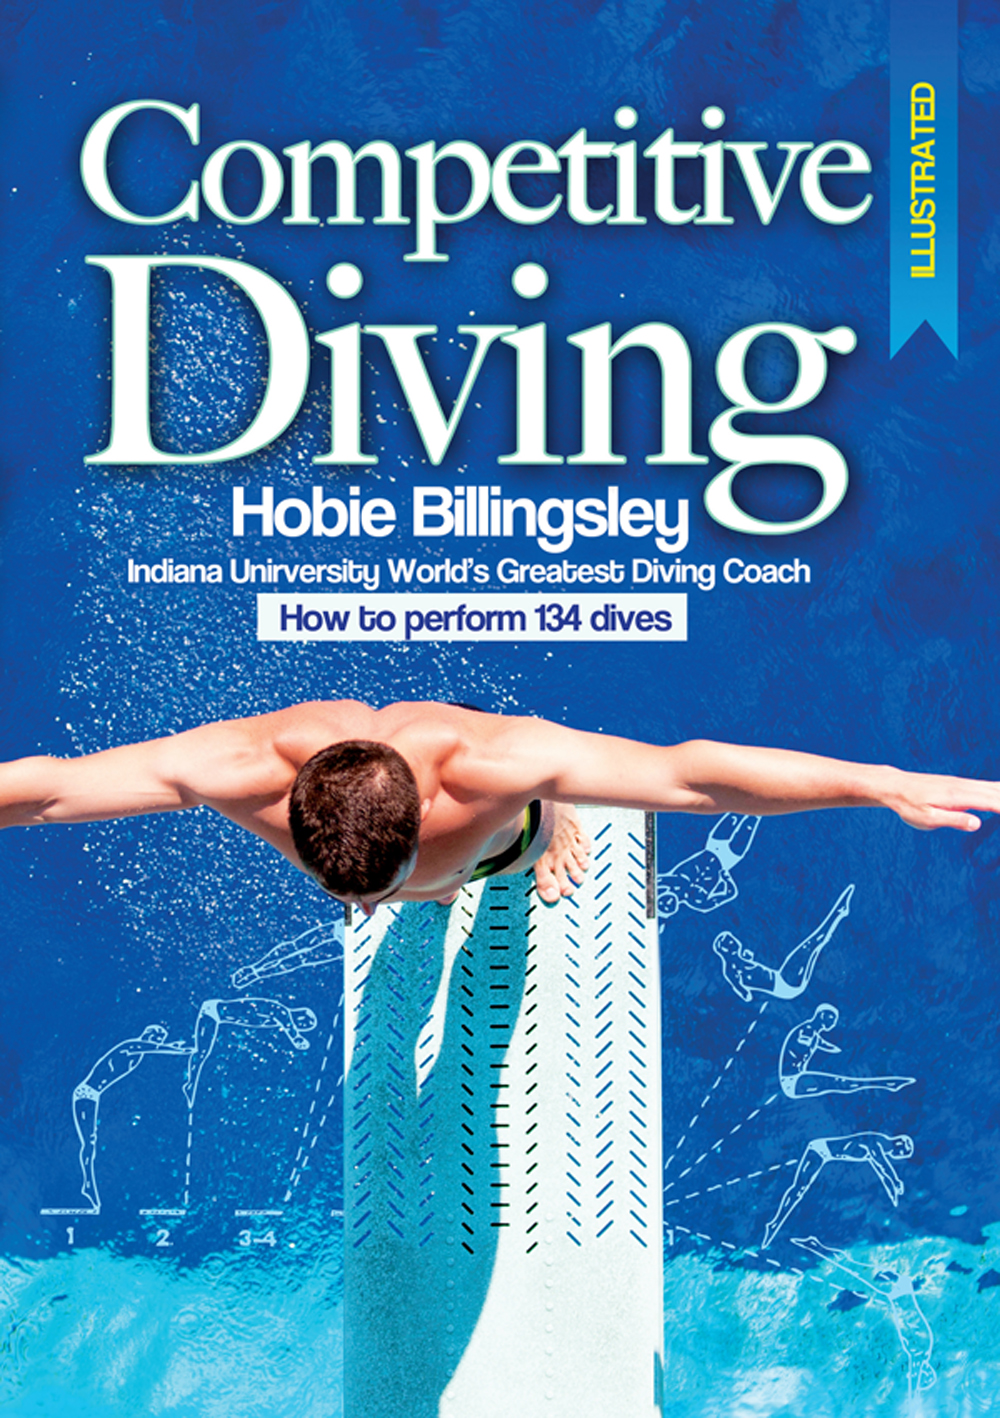 Competitive Diving Illustrated - Coaching strategies to perform 134 dives